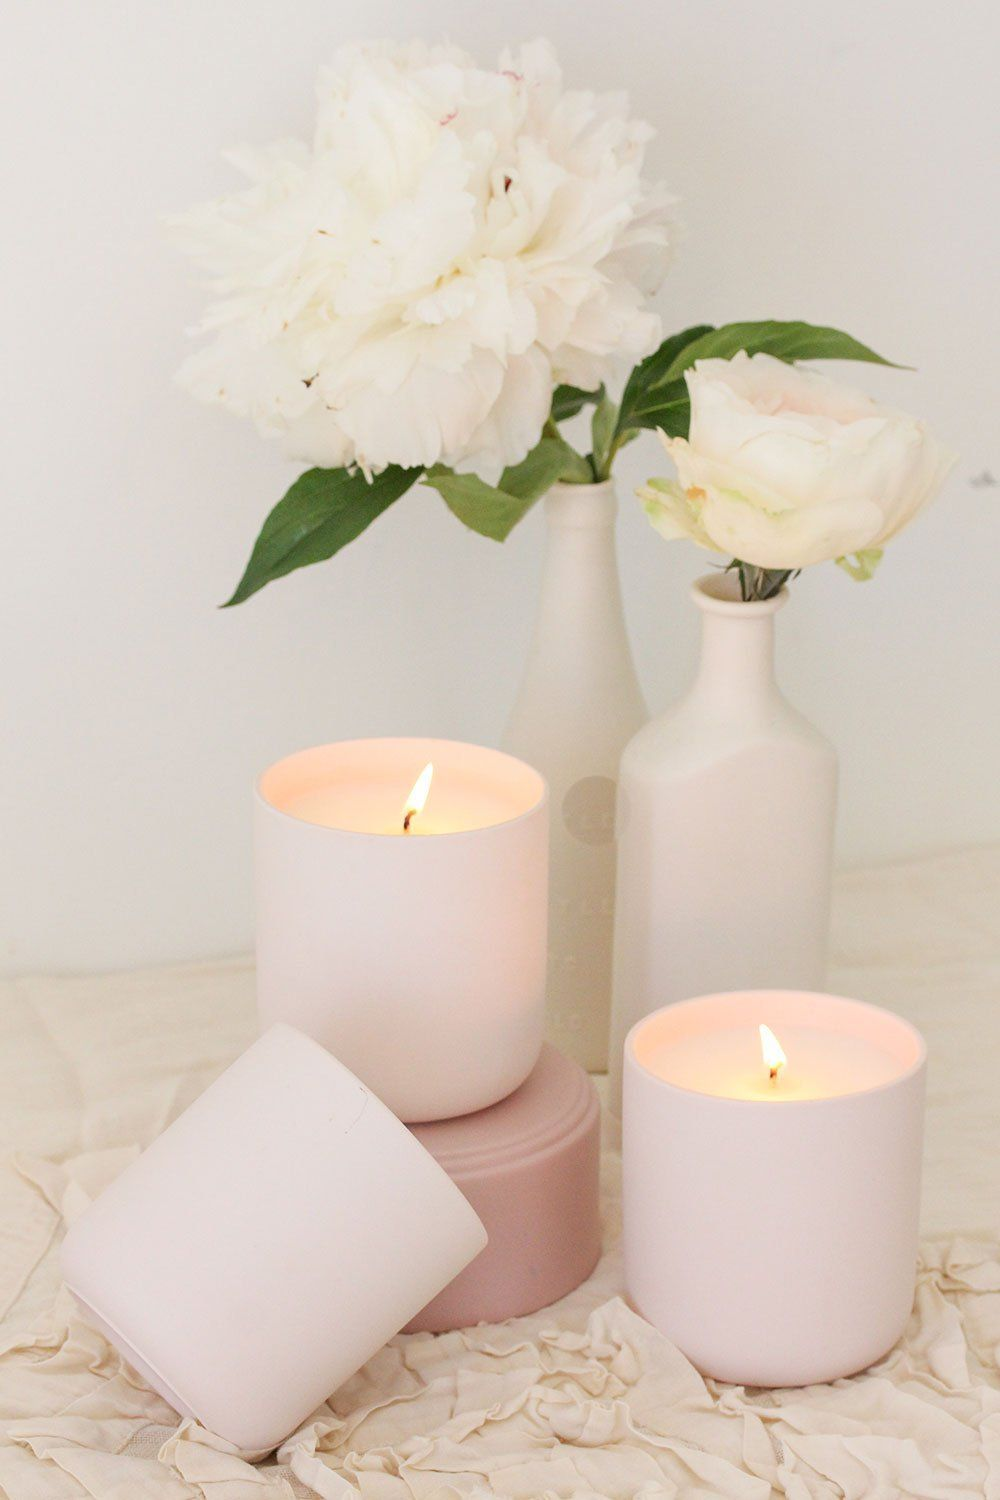 decorative candles Handmade soy wax candles white candles highly scented candles 100/% vegan /& cruelty free. aesthetic candles